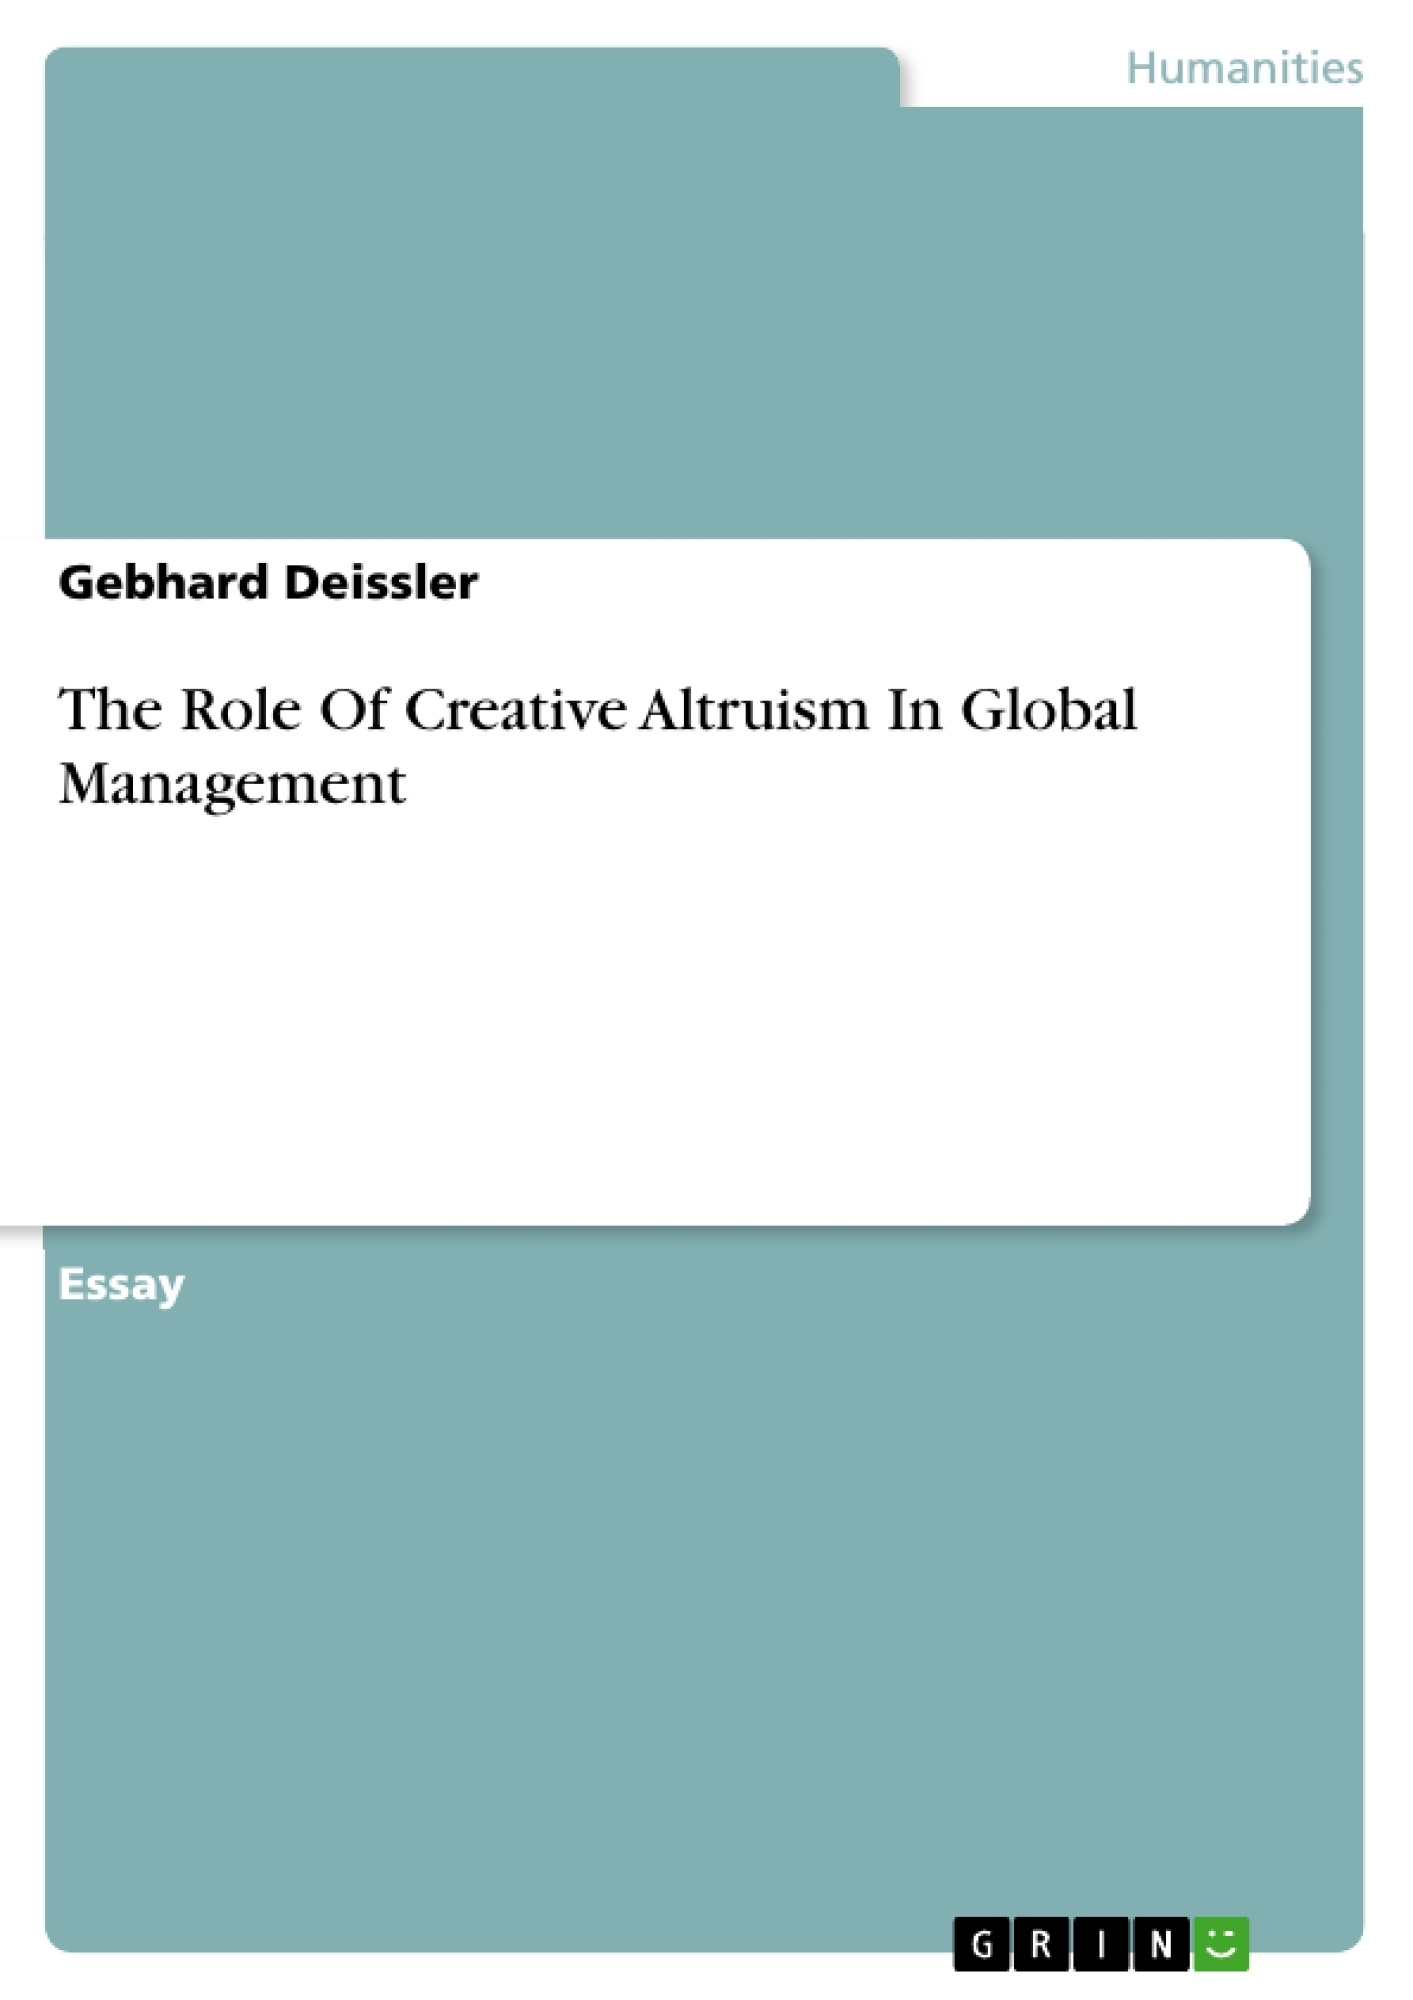 Title: The Role Of Creative Altruism In Global Management